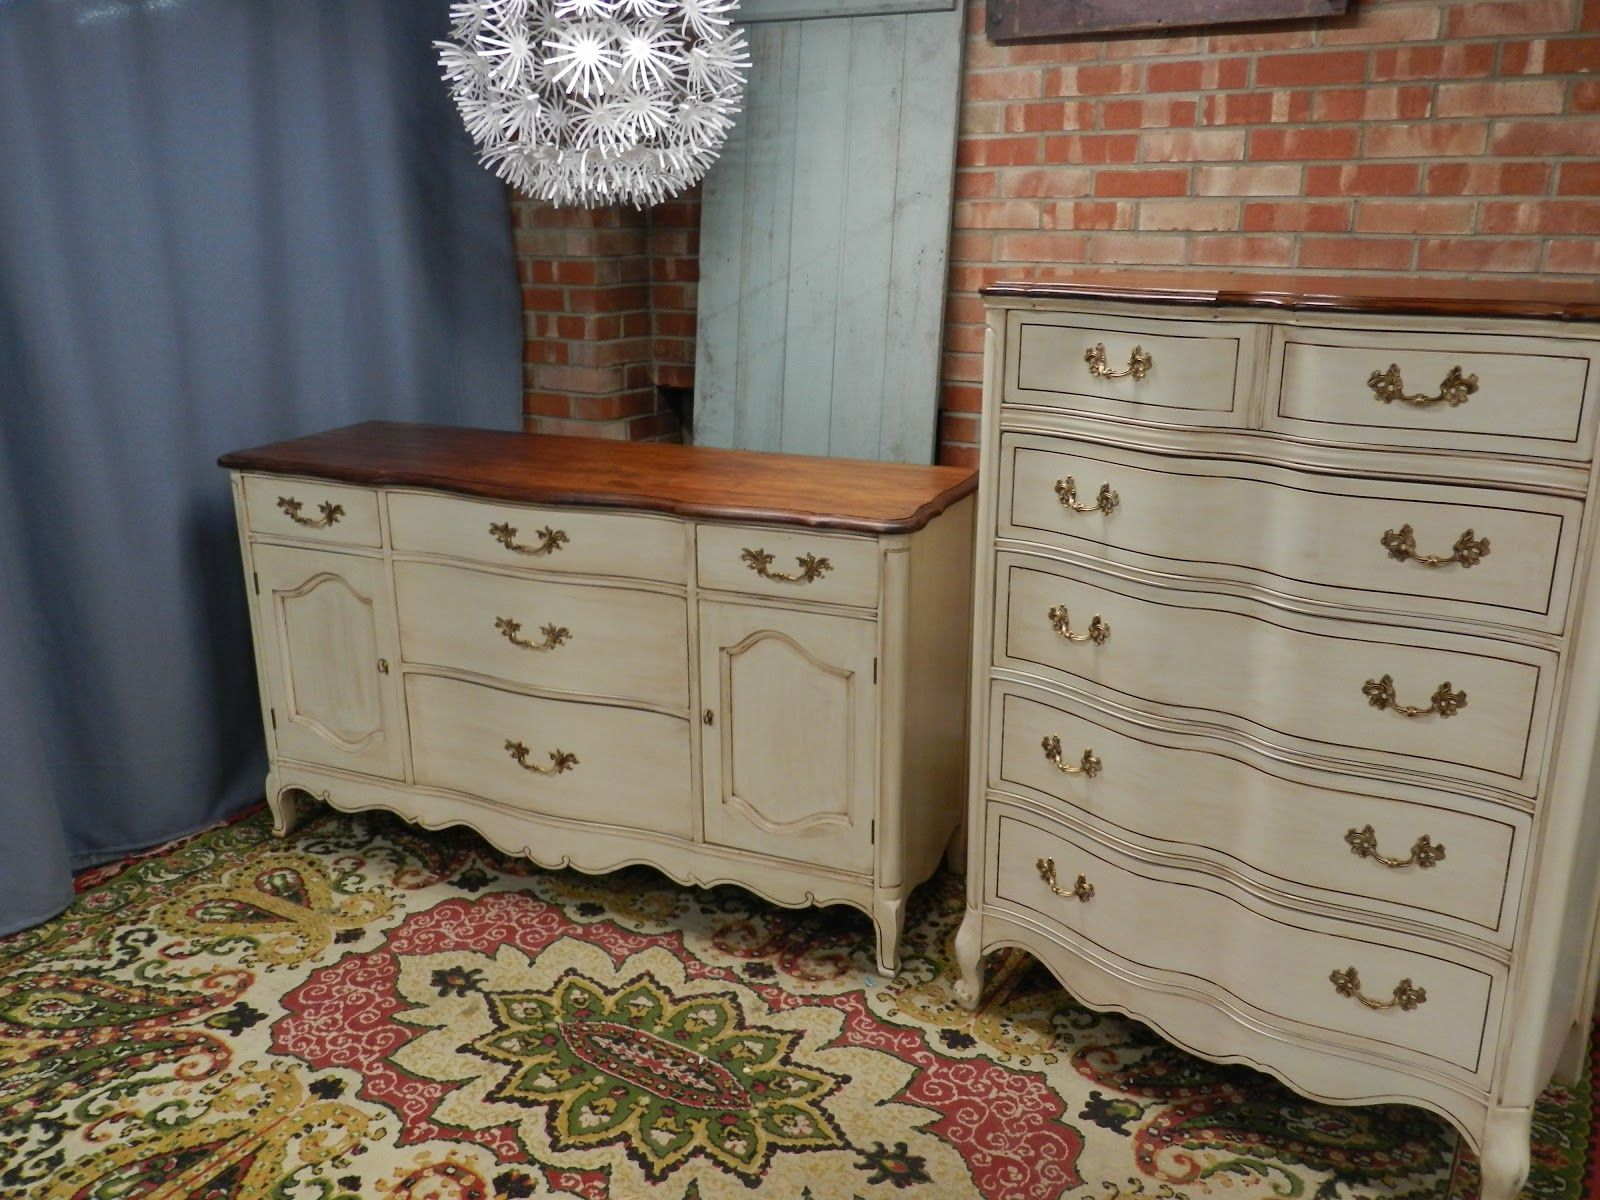 Our Refinished French Provincial Bedroom Furniture Refinished By Simple Redesign In Grand